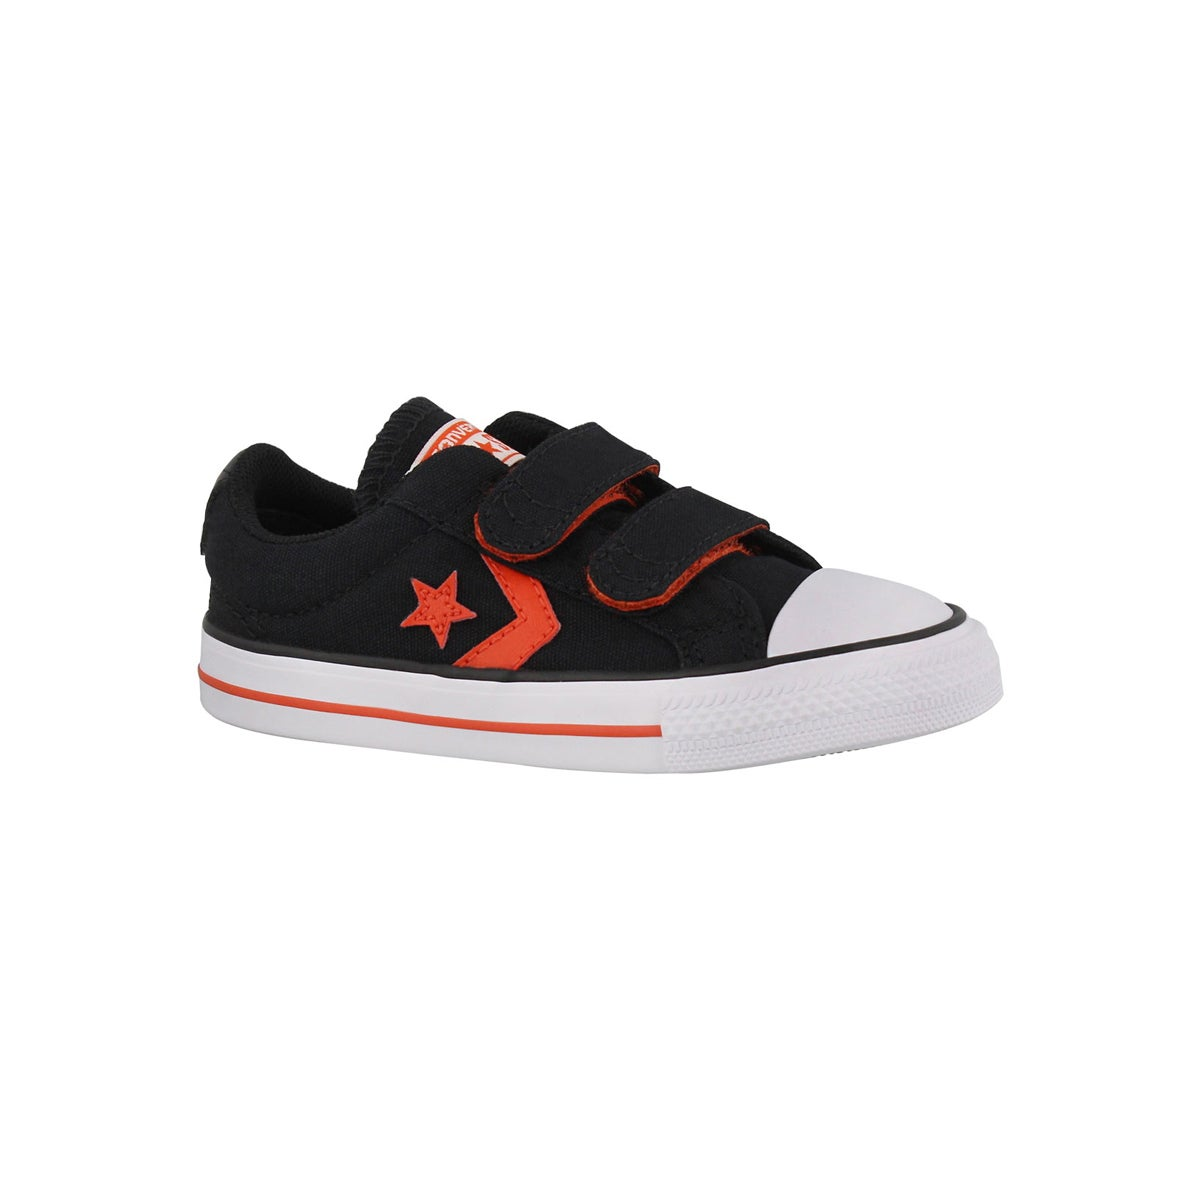 Infants' STAR PLAYER 2V black/red/whtie sneakers